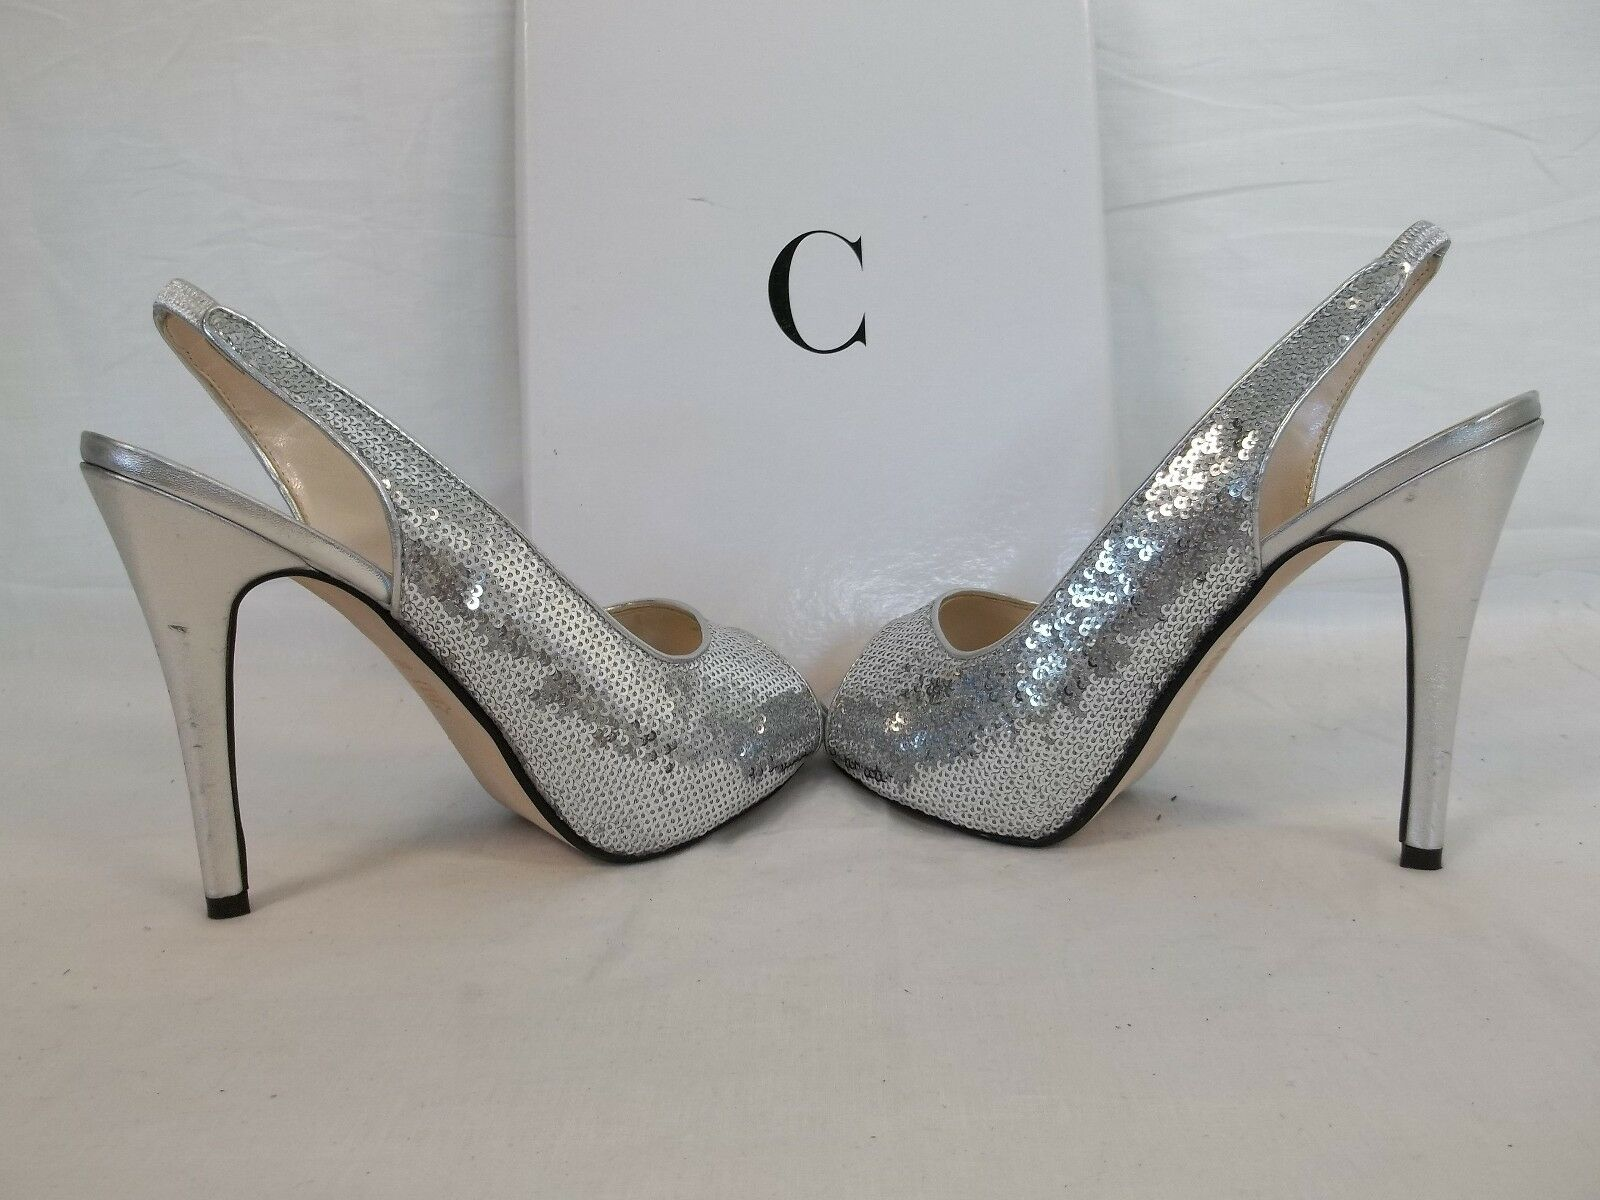 Caparros 6.5 M Channing Silver Satin Open Open Open Toe Sling Backs Heels New Damenschuhe Schuhes 950458